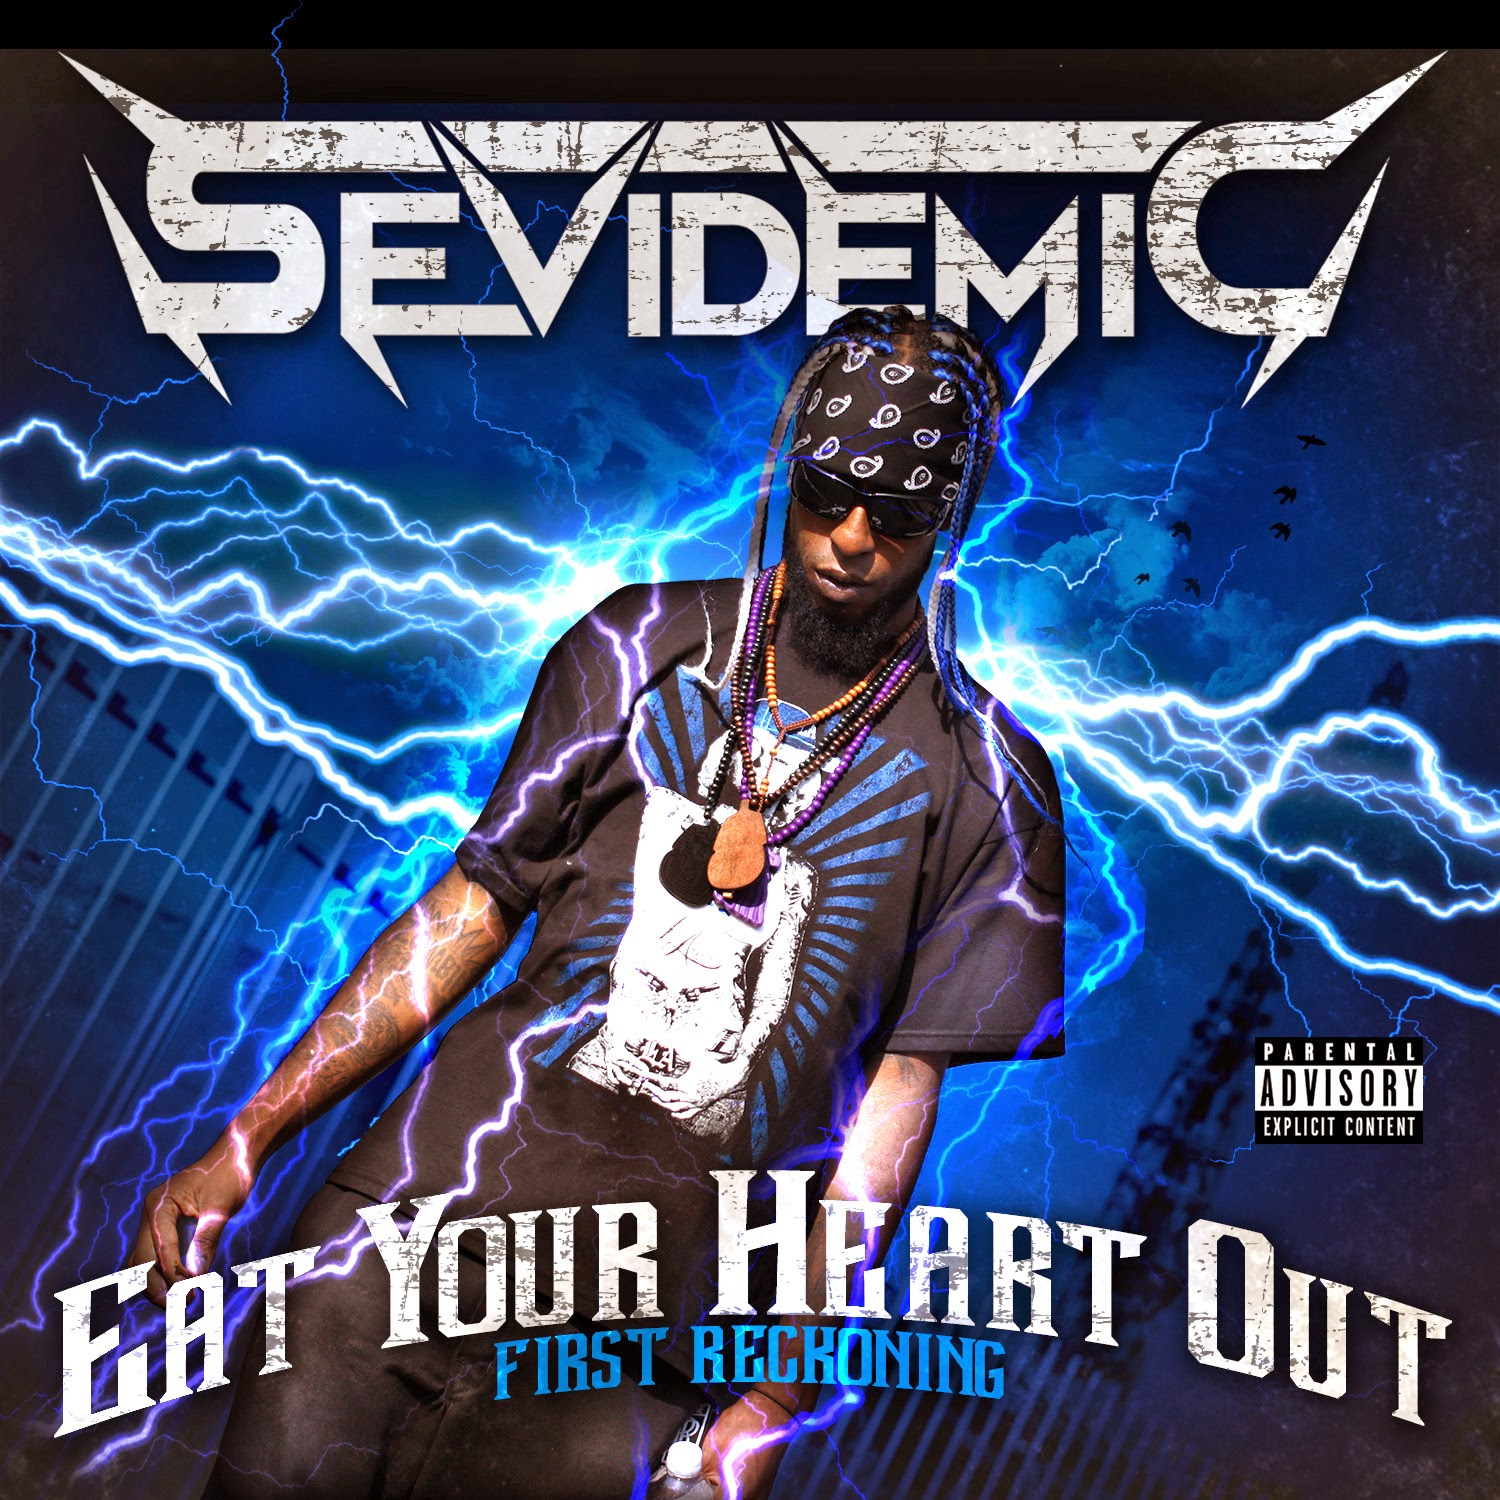 http://sevidemic.bandcamp.com/album/eat-your-heart-out-first-reckoning